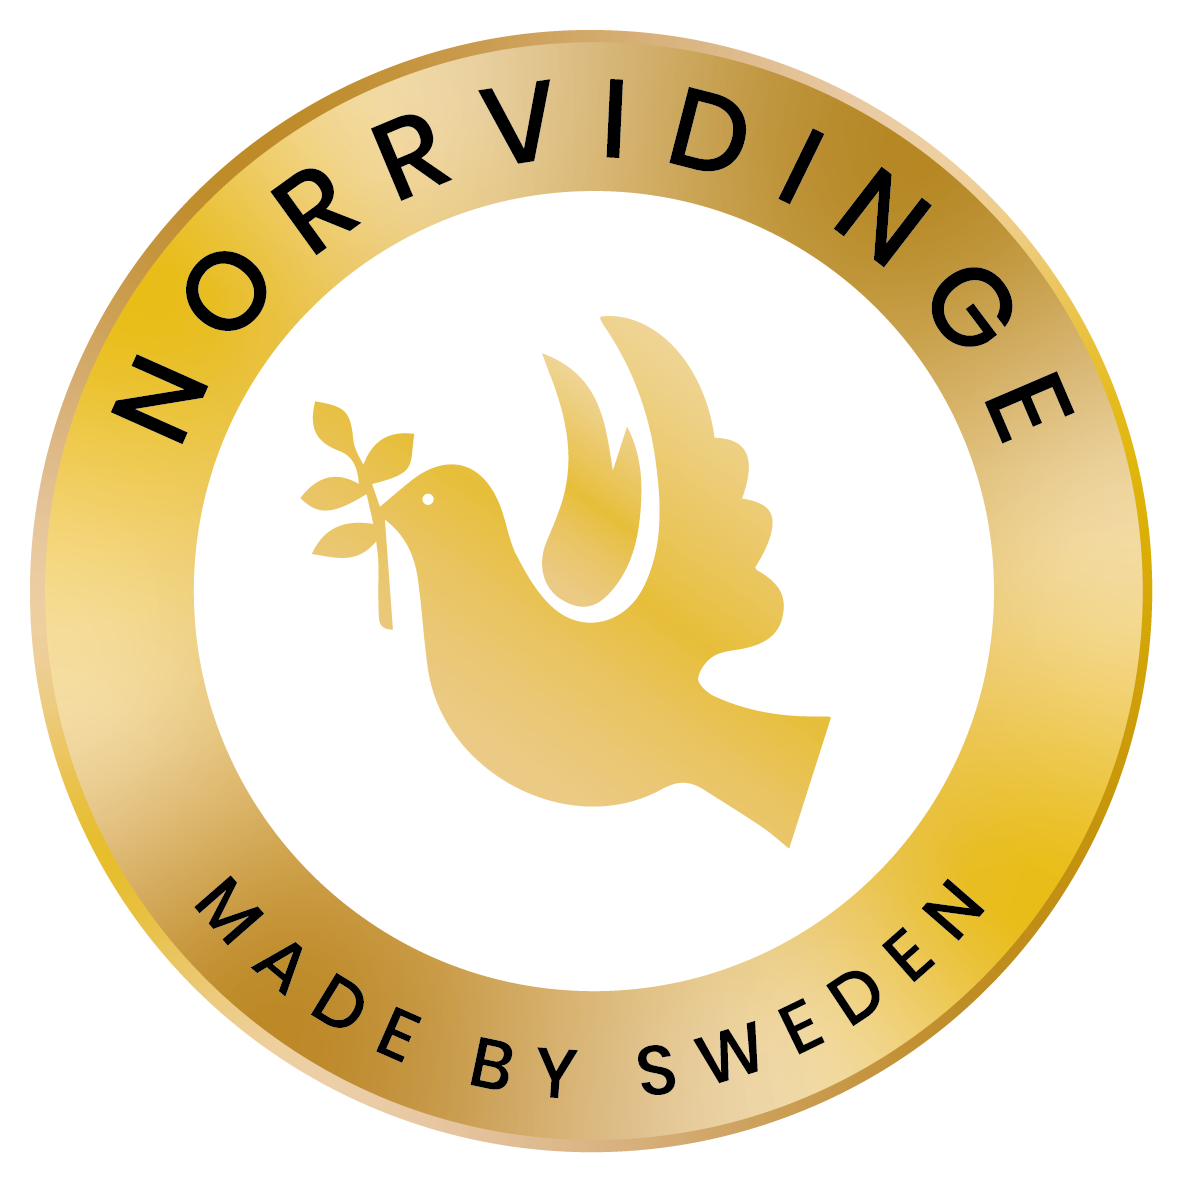 Norrvidinge of Sweden